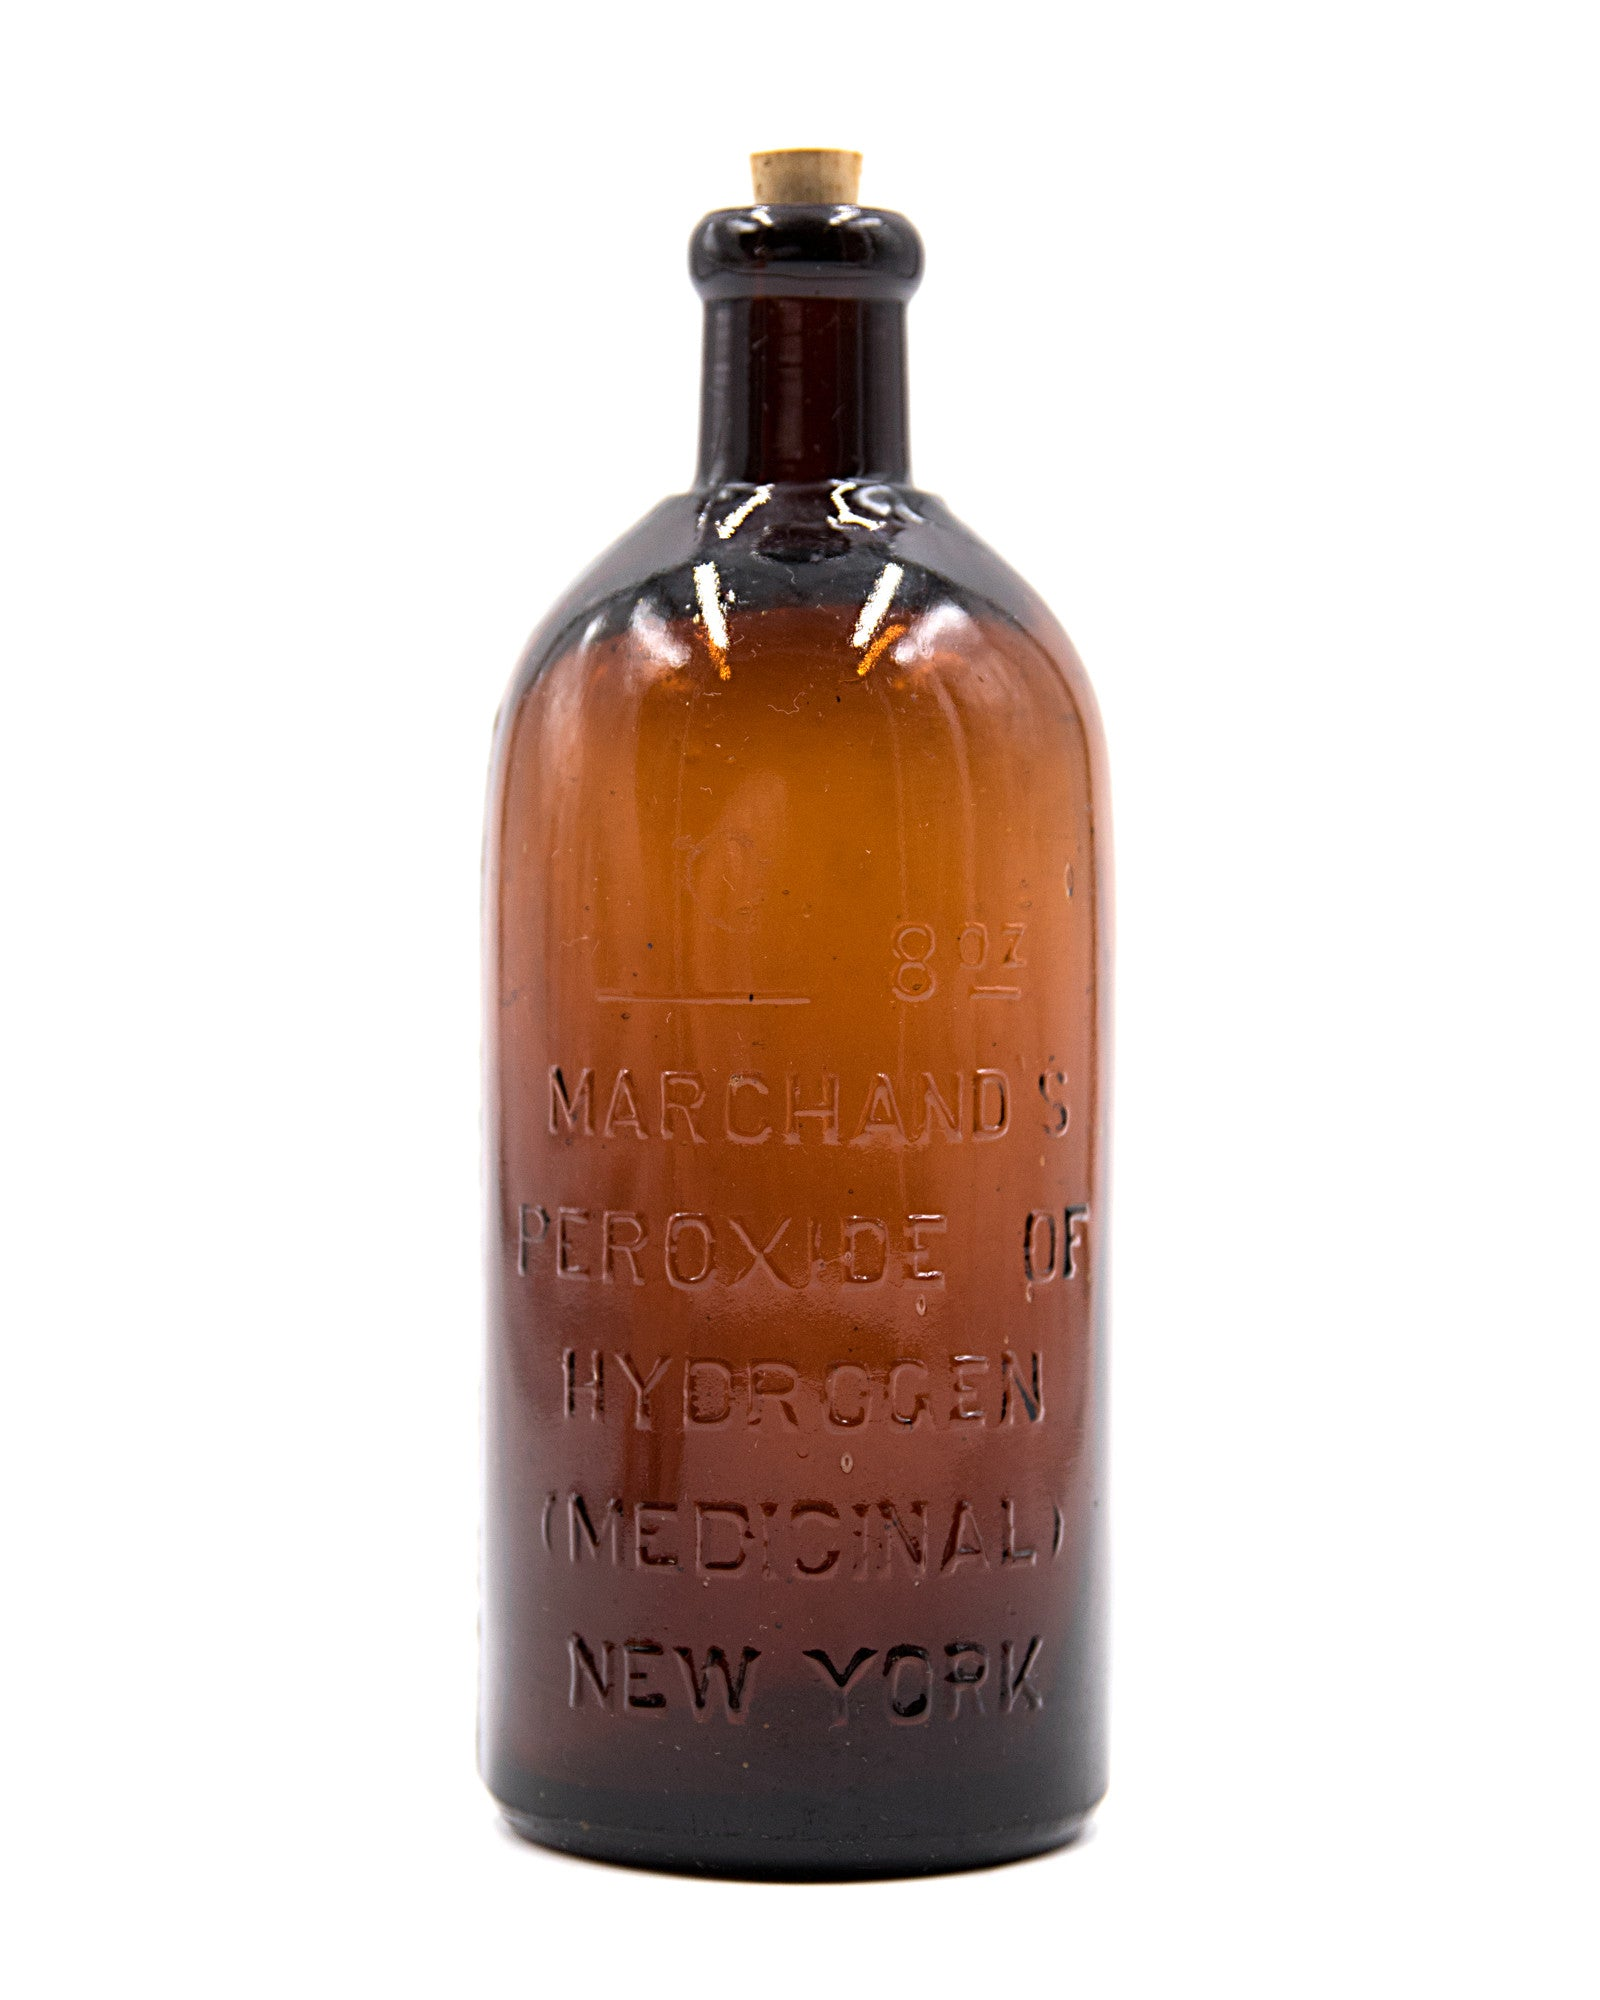 Glass Bottle - Marchand's Peroxide of Hydrogen (Medicinal), NY